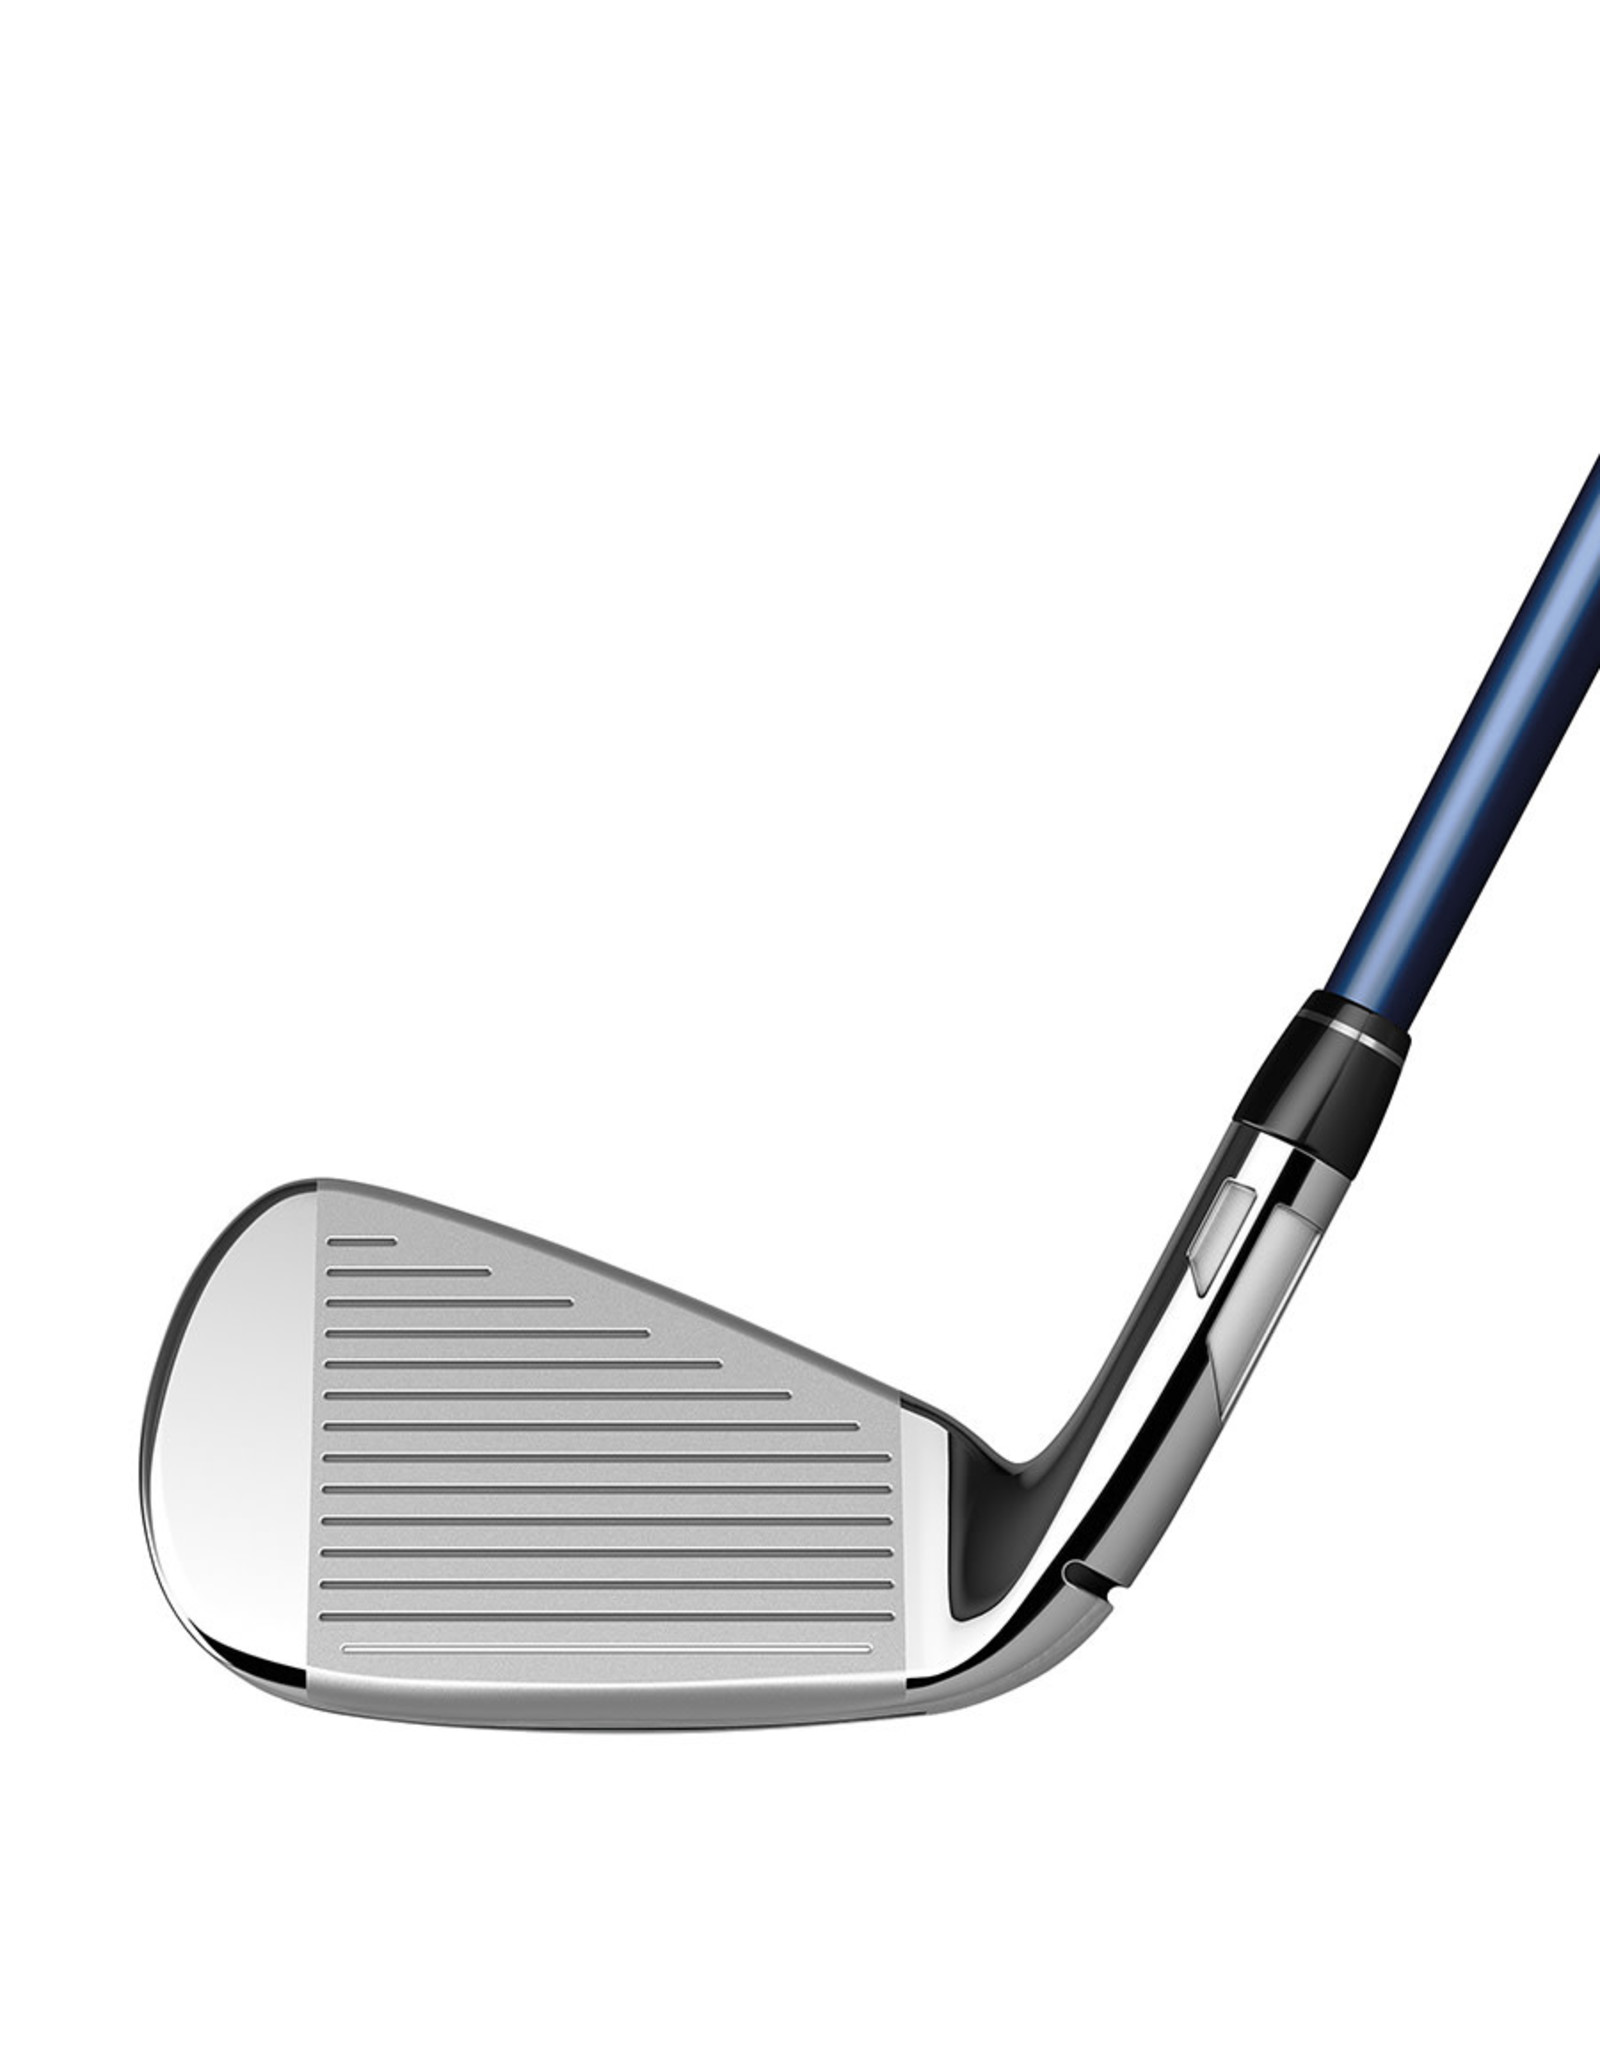 Taylormade Taylormade SIM Max Oversized Irons